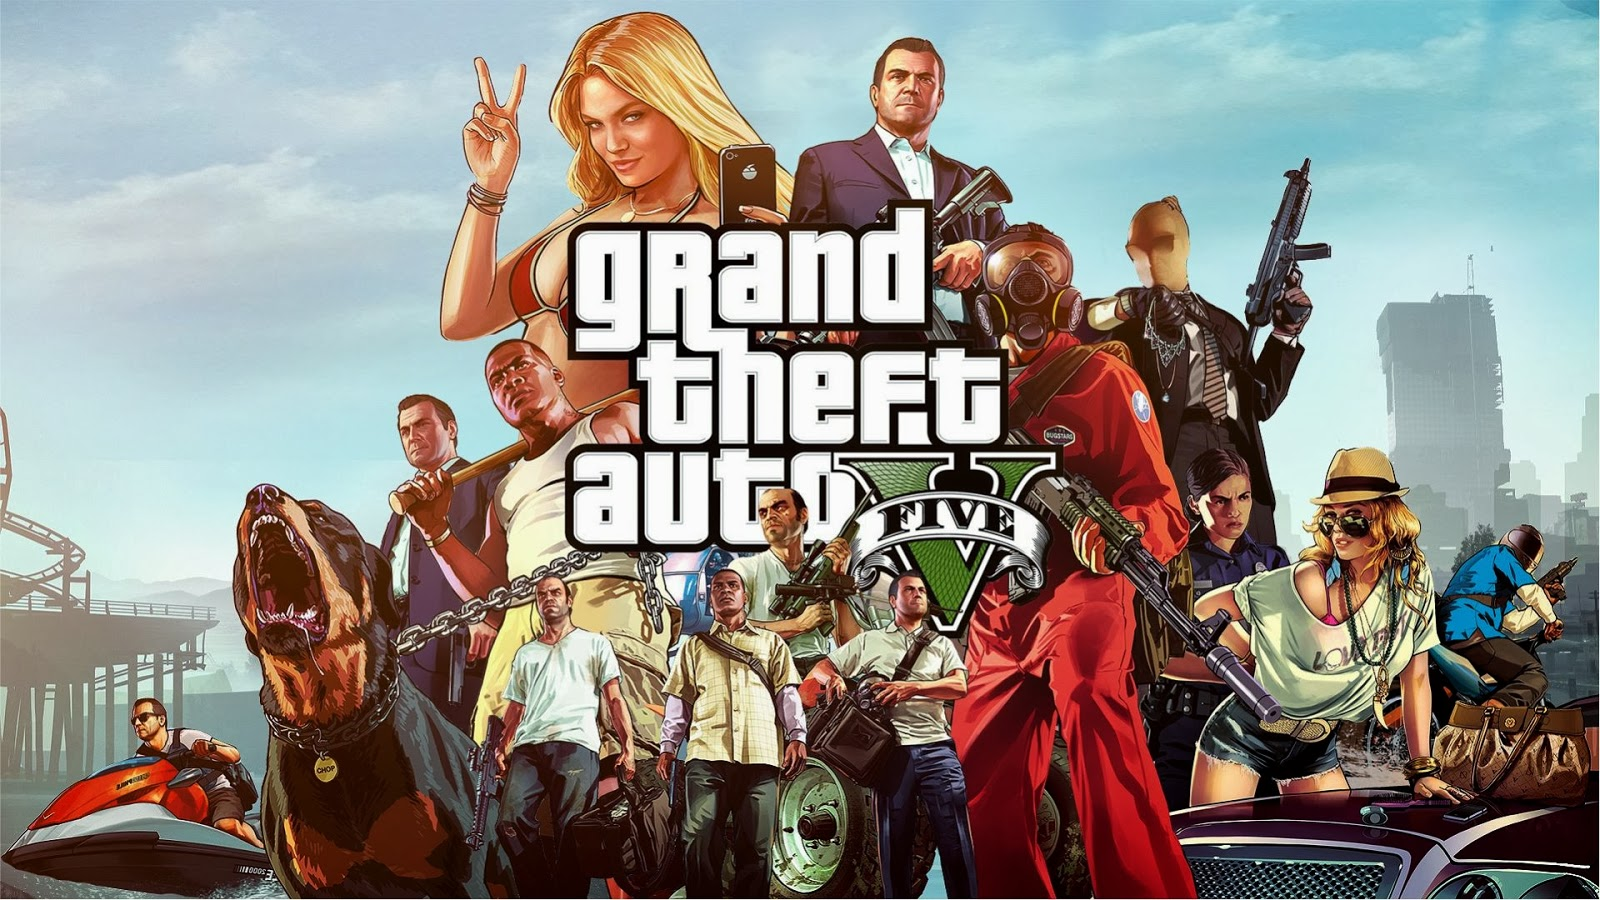 wallpaper gta grand theft auto 5 hd gratis download gta v 1080p 1600x900